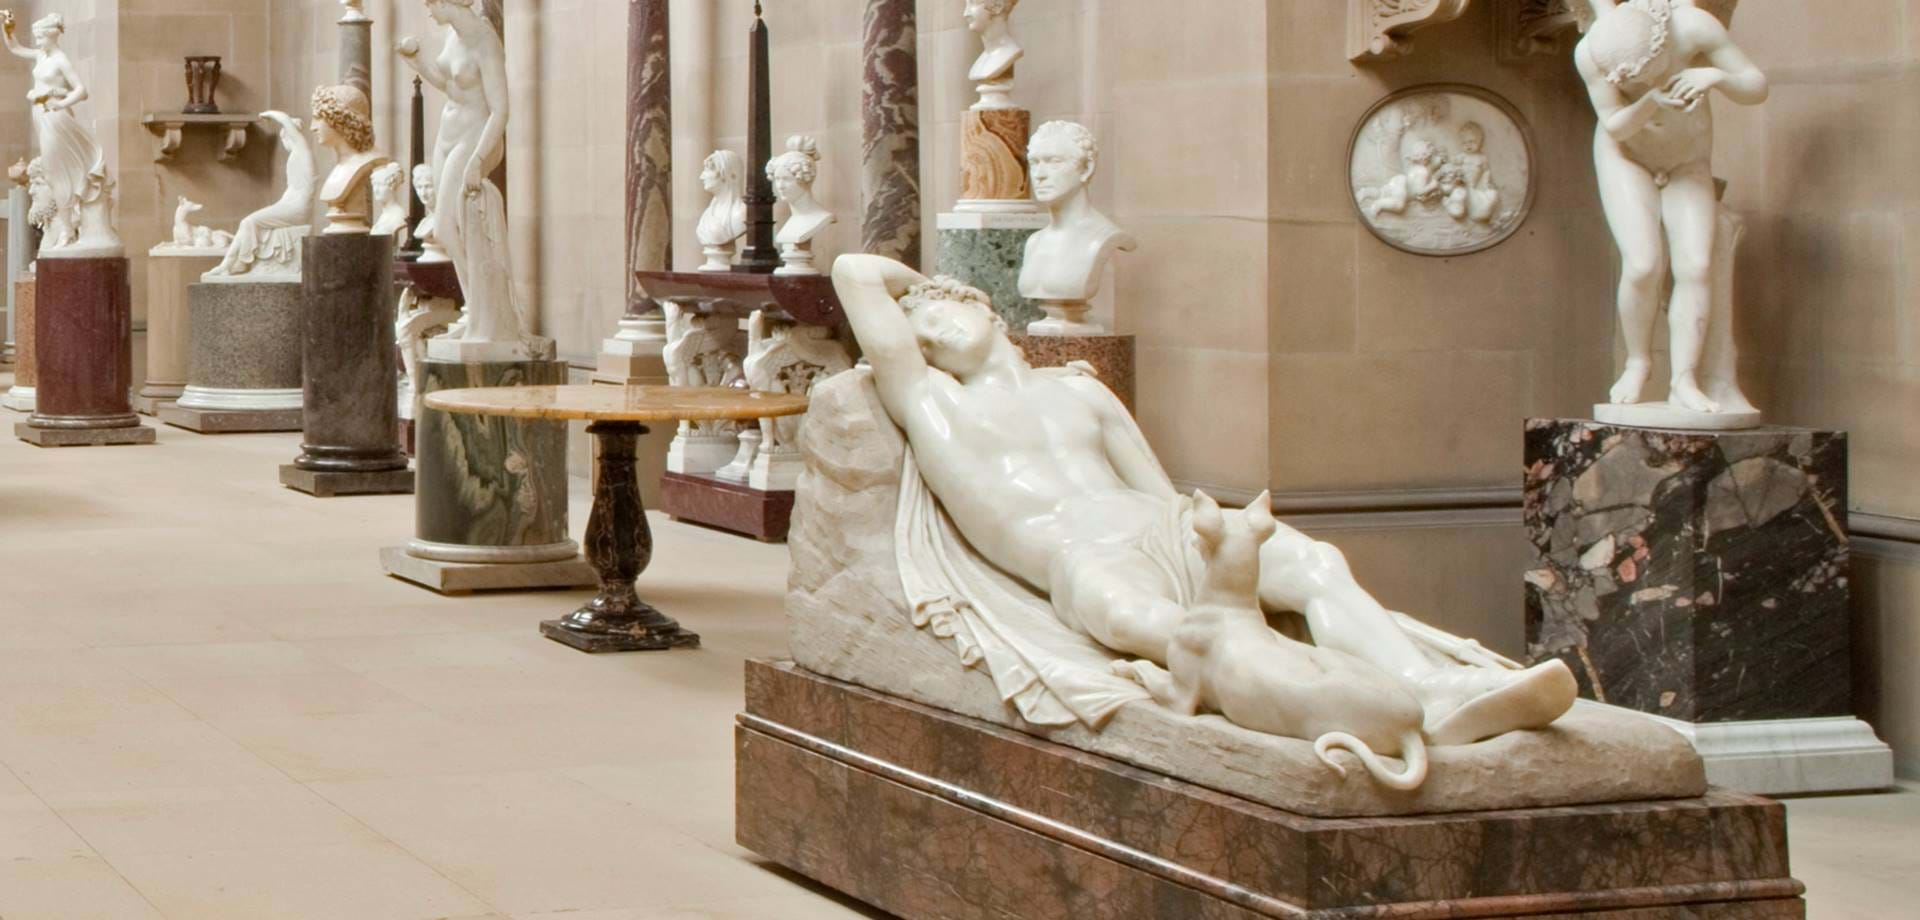 The Sleeping Endymion